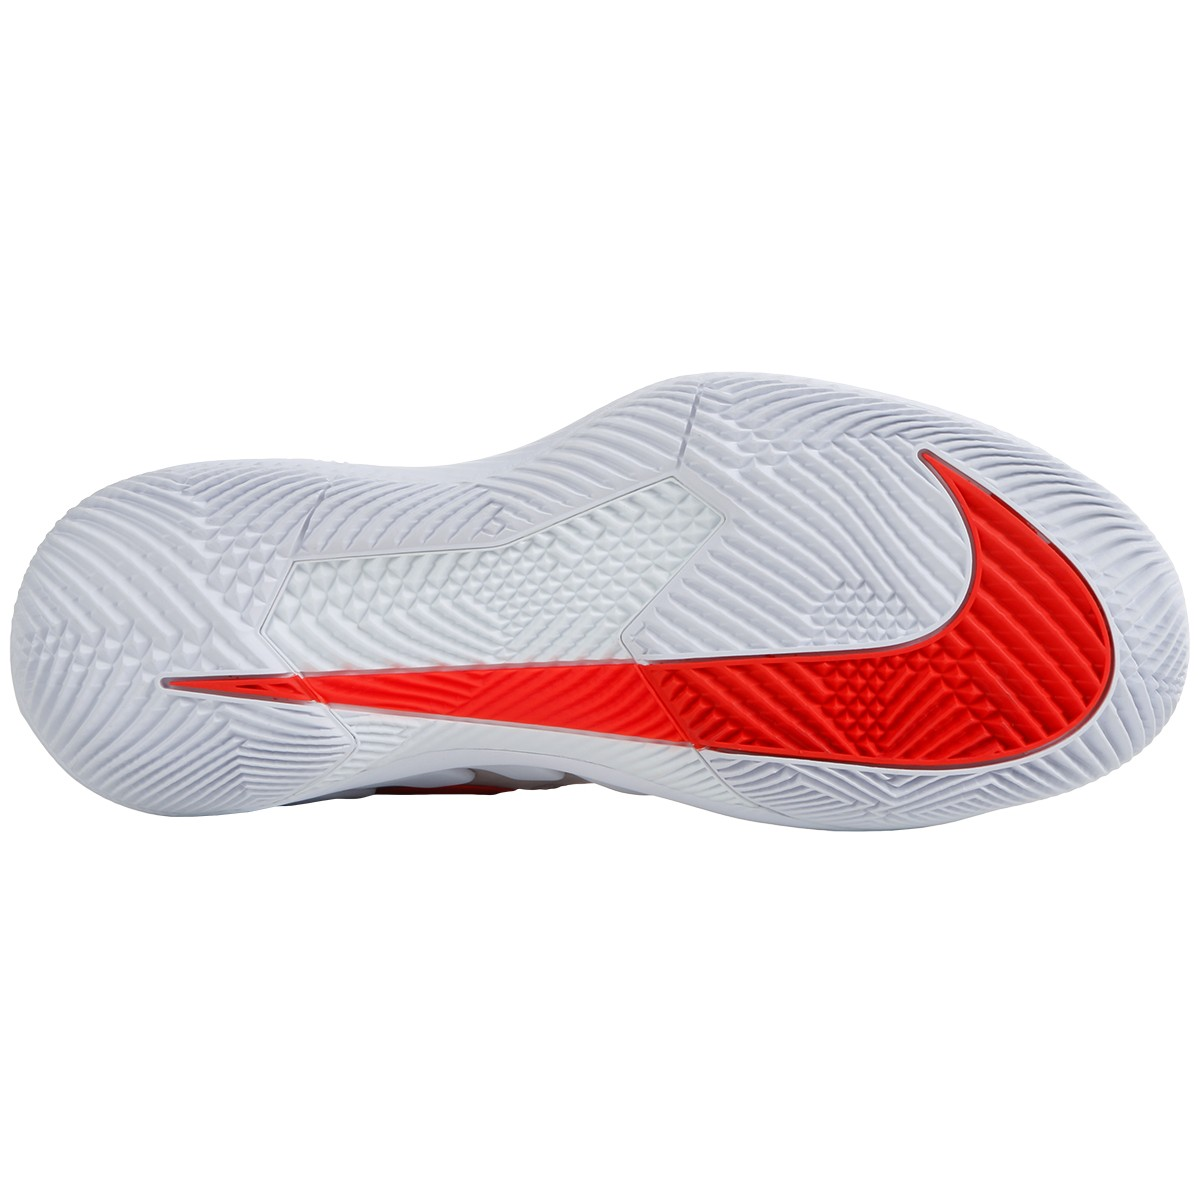 Juniors Nike Air Zoom Vapor X All Surfaces Shoes Nike